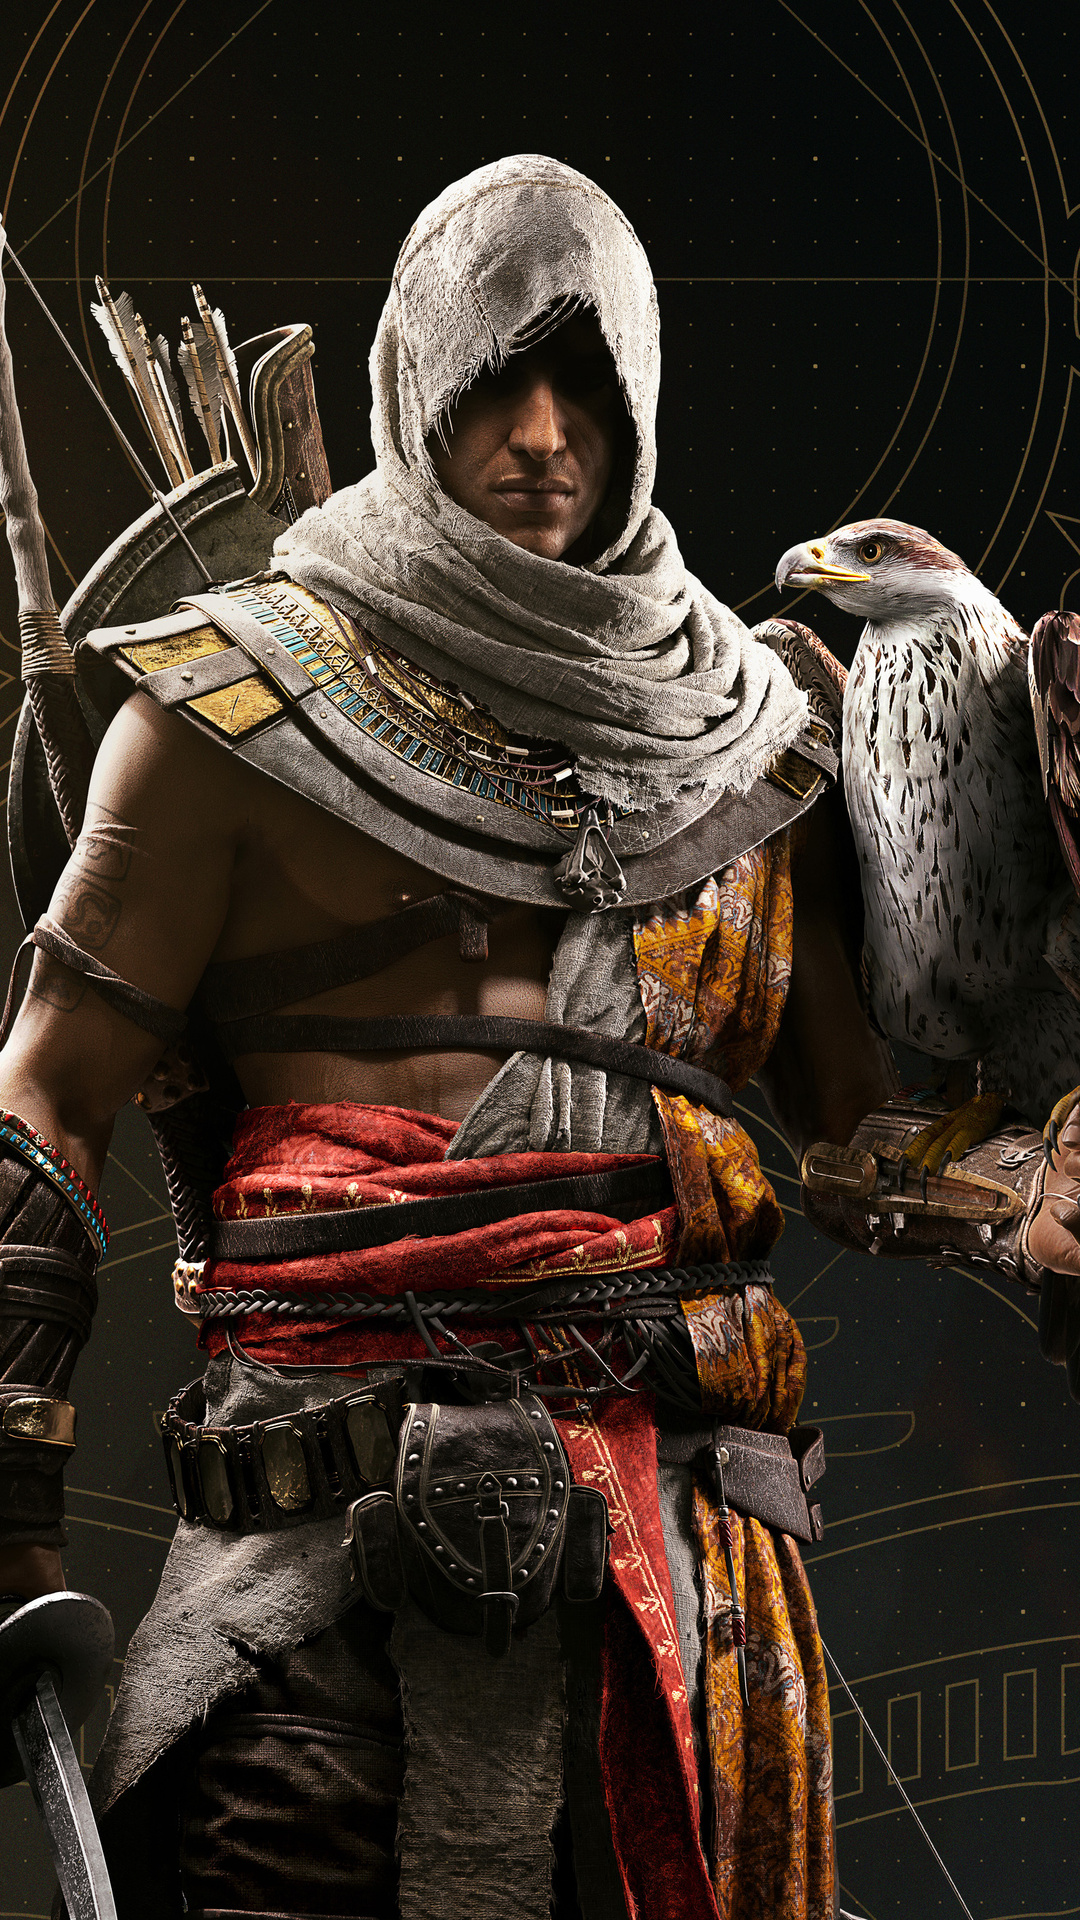 1080x1920 2018 Assassins Creed Origins 5k Iphone 7 6s 6 Plus Pixel Xl One Plus 3 3t 5 Hd 4k Wallpapers Images Backgrounds Photos And Pictures